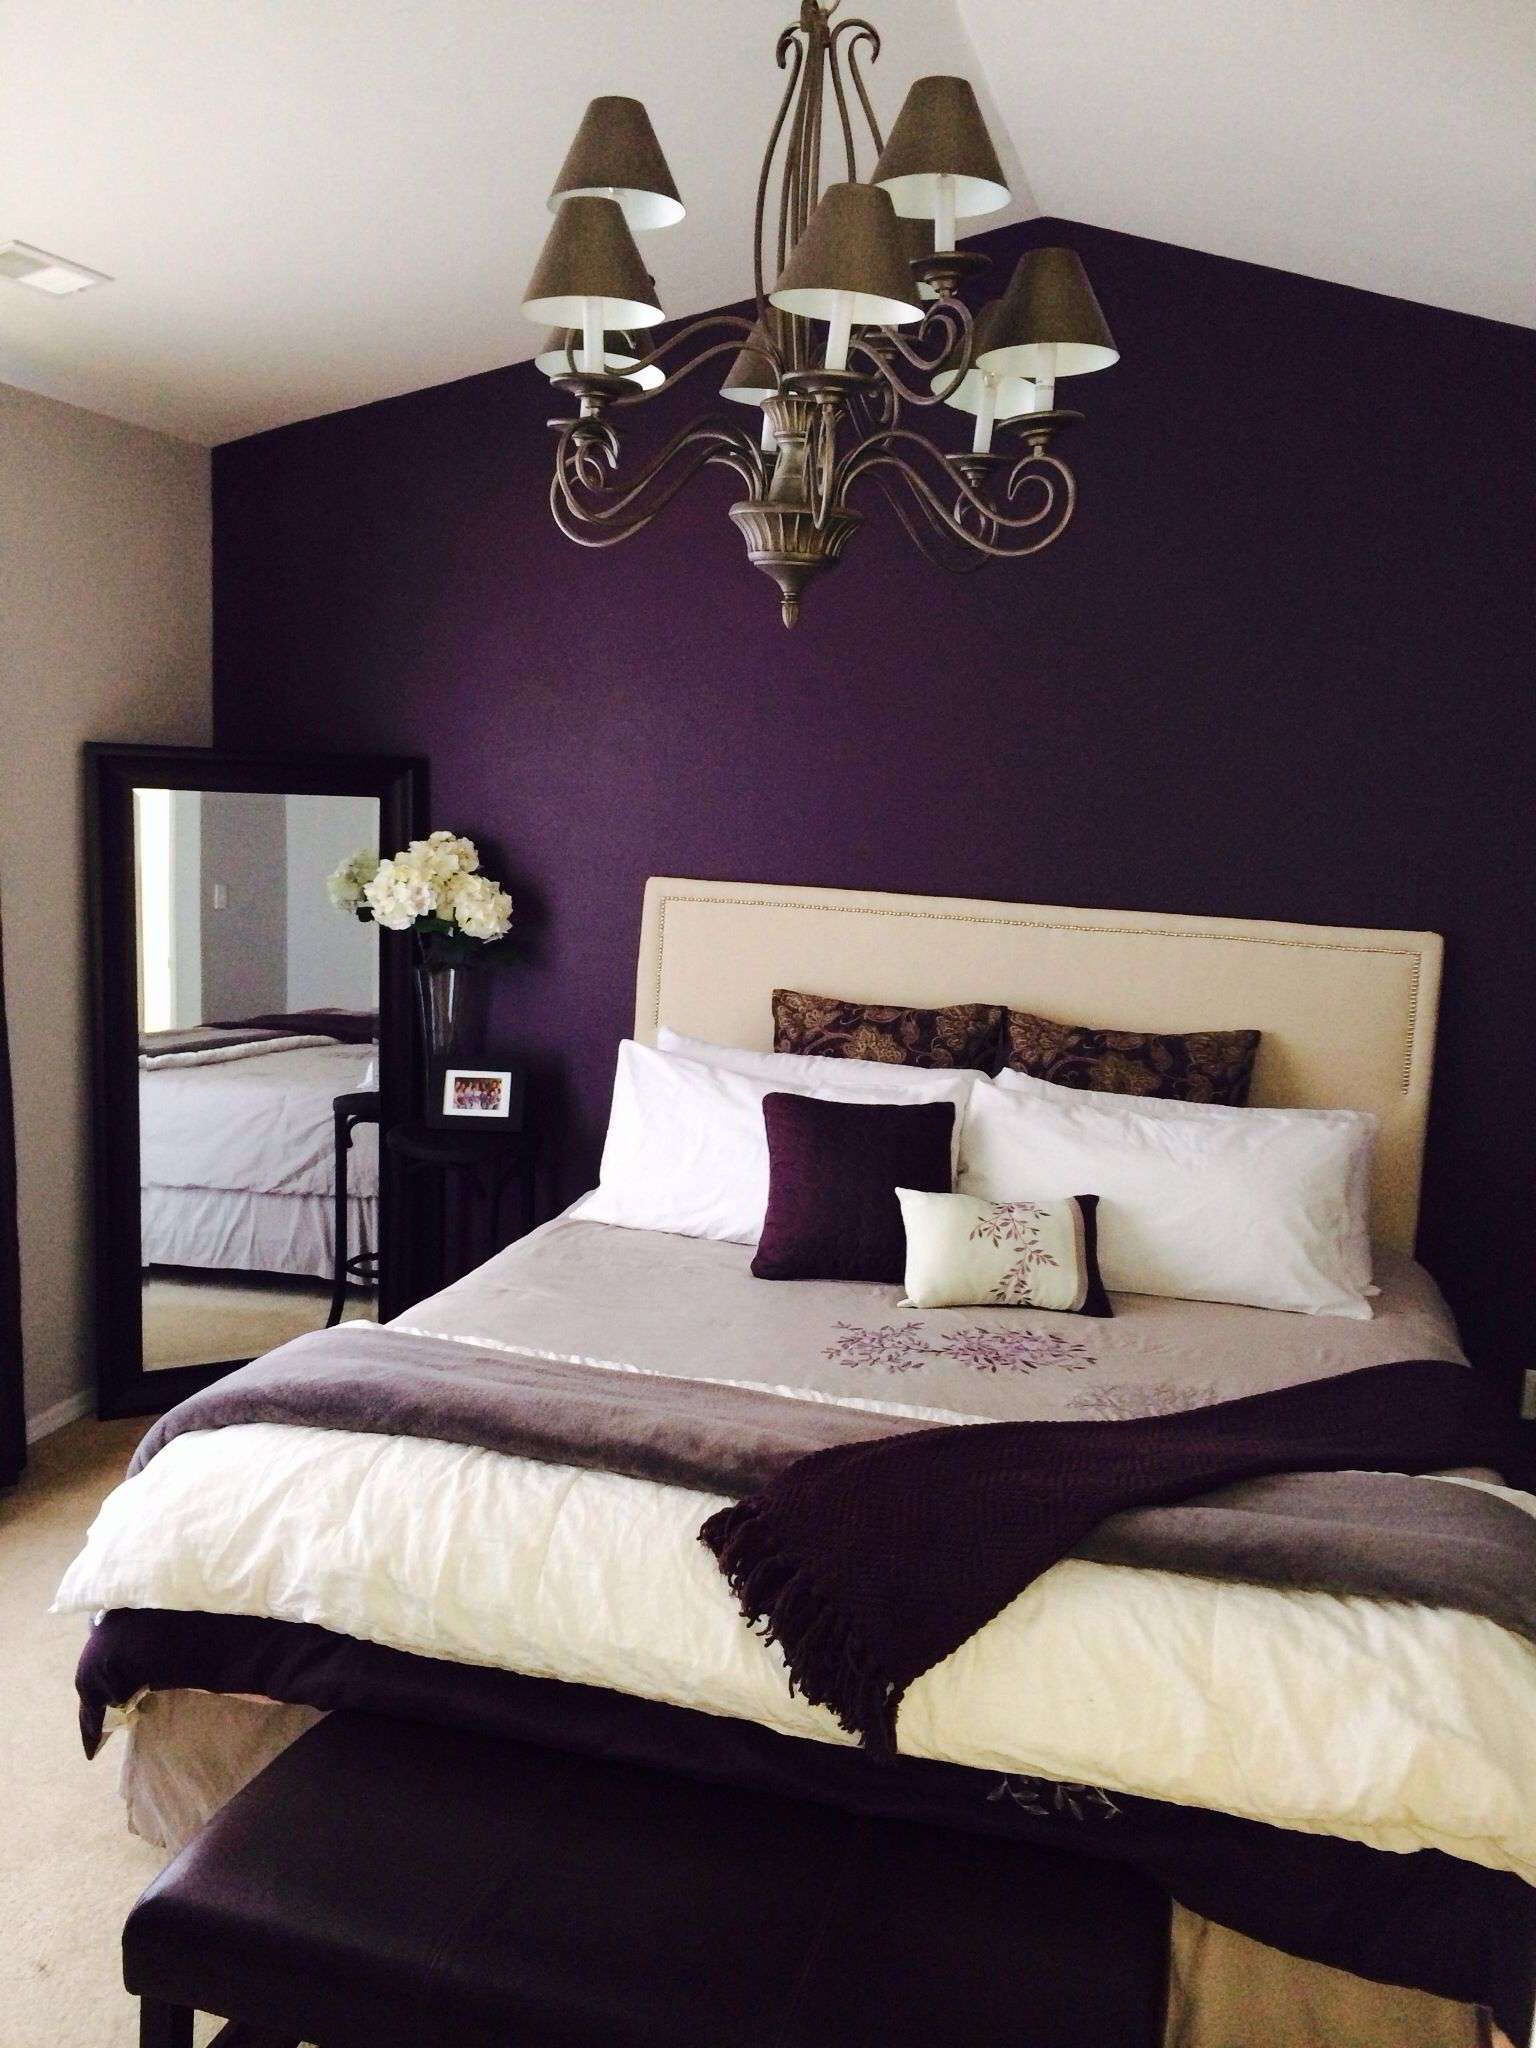 astonishing romantic ideas for her in the bedroom in beautiful romantic bedroom decor hopelodgeutah